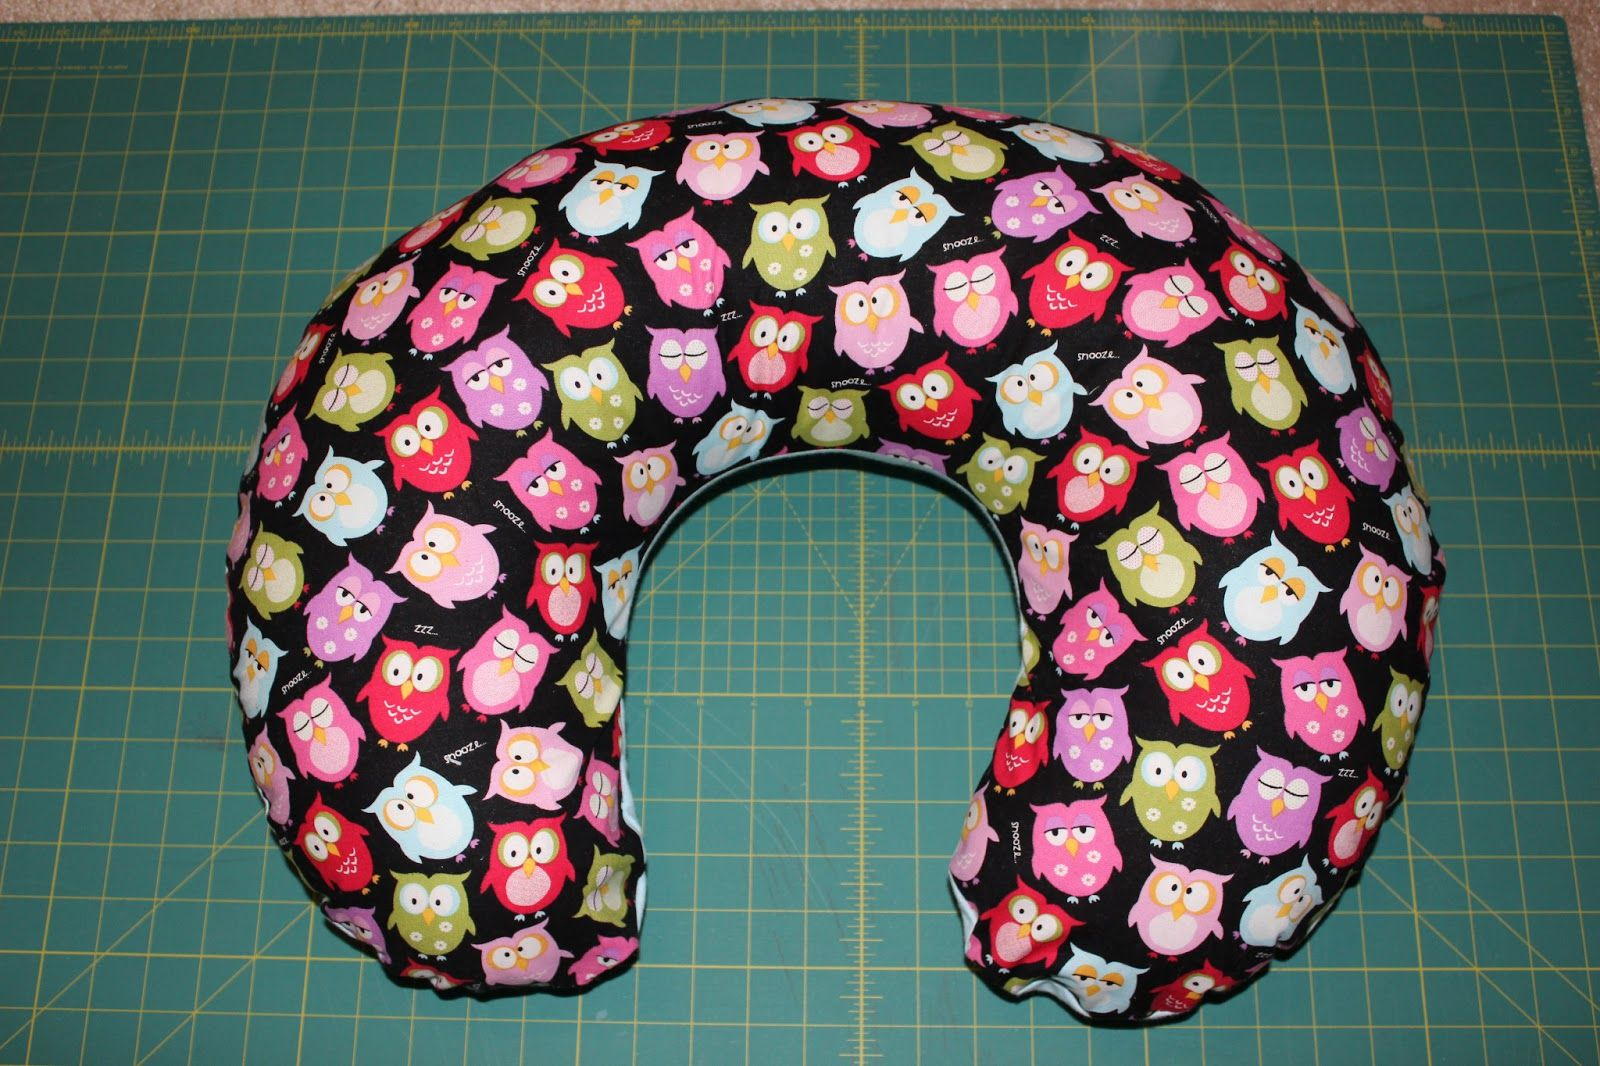 Boppy Pillow Cover Tutorial best tutorial out there